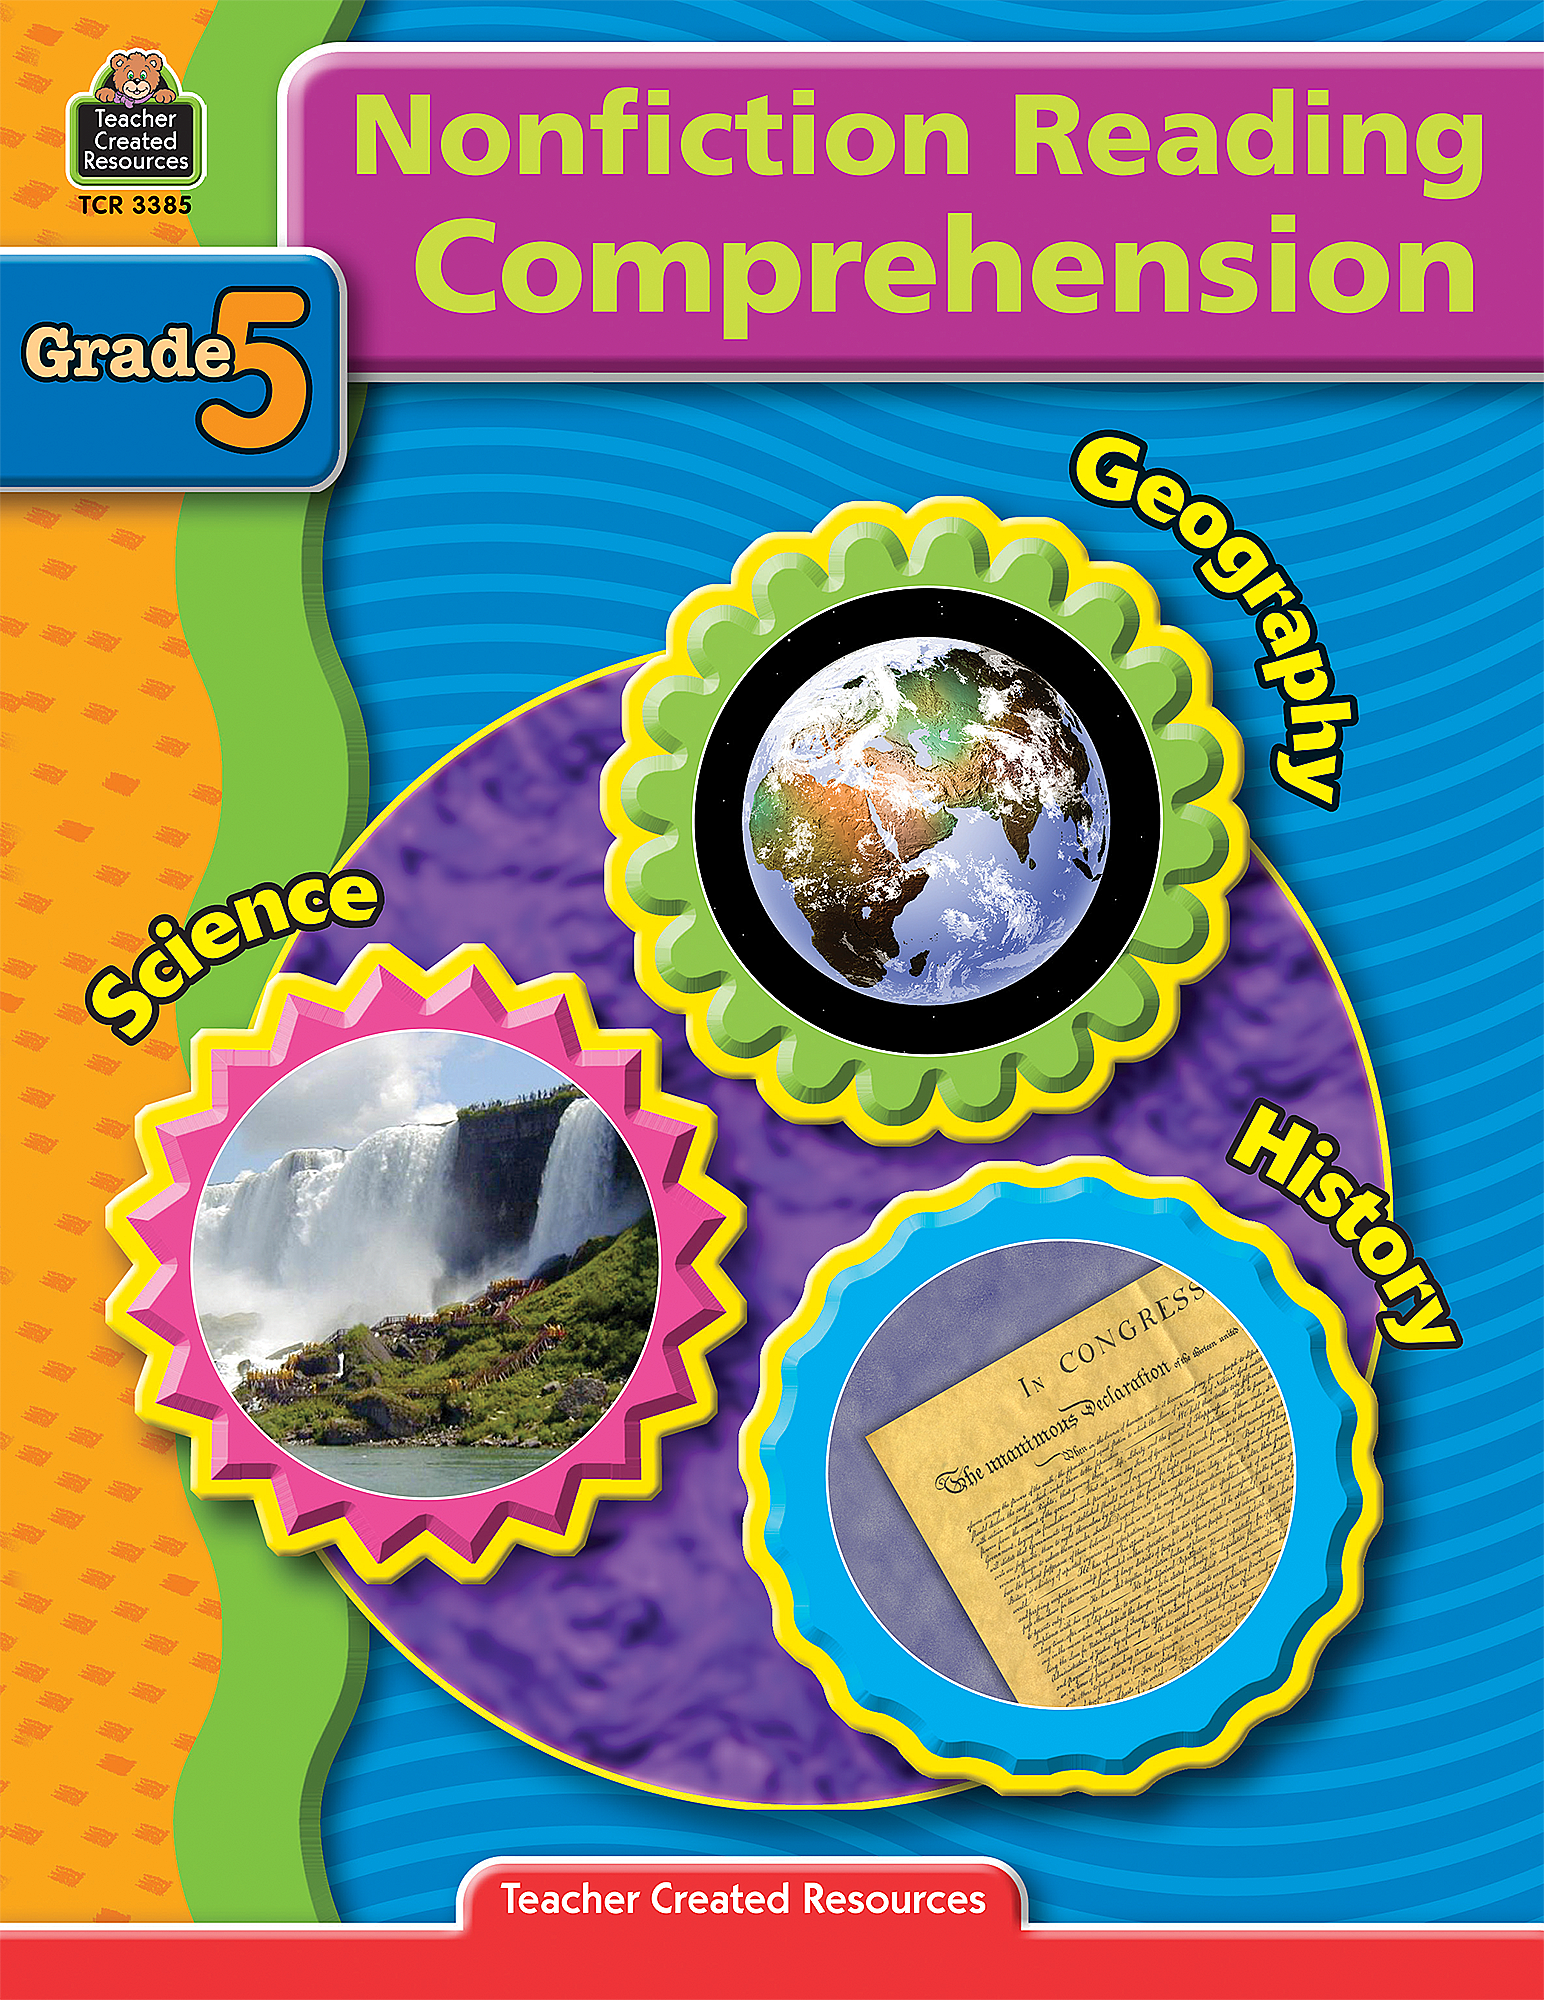 Nonfiction Reading Comprehension Grade 5 - TCR3385 ...